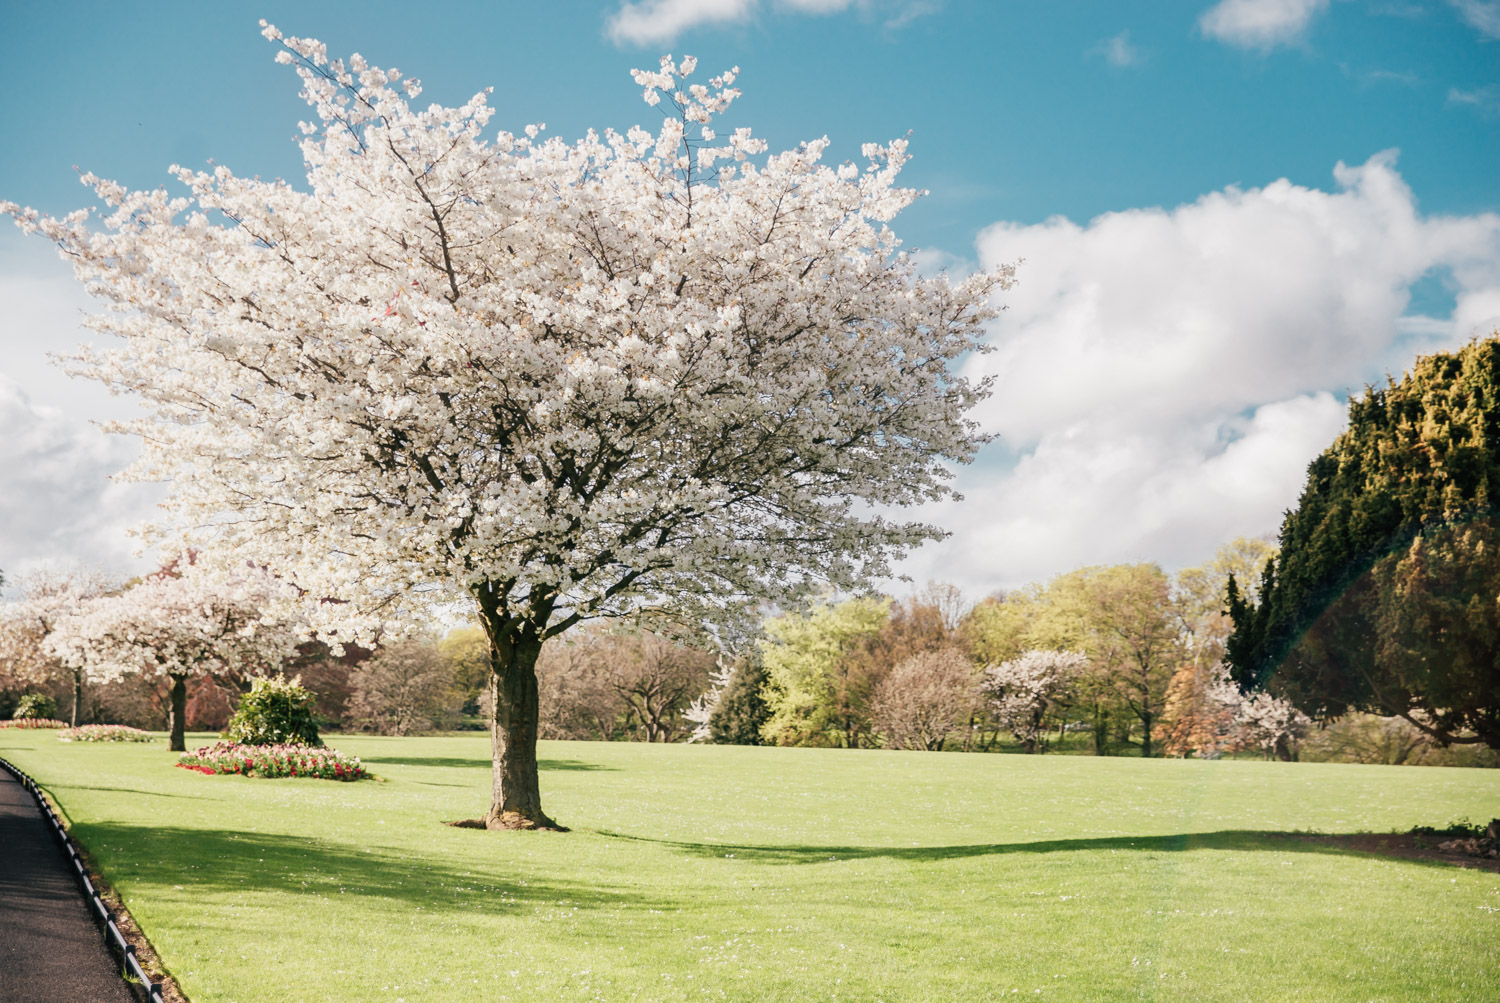 Phoenix Park: The Best Instagram Places in Dublin, Ireland